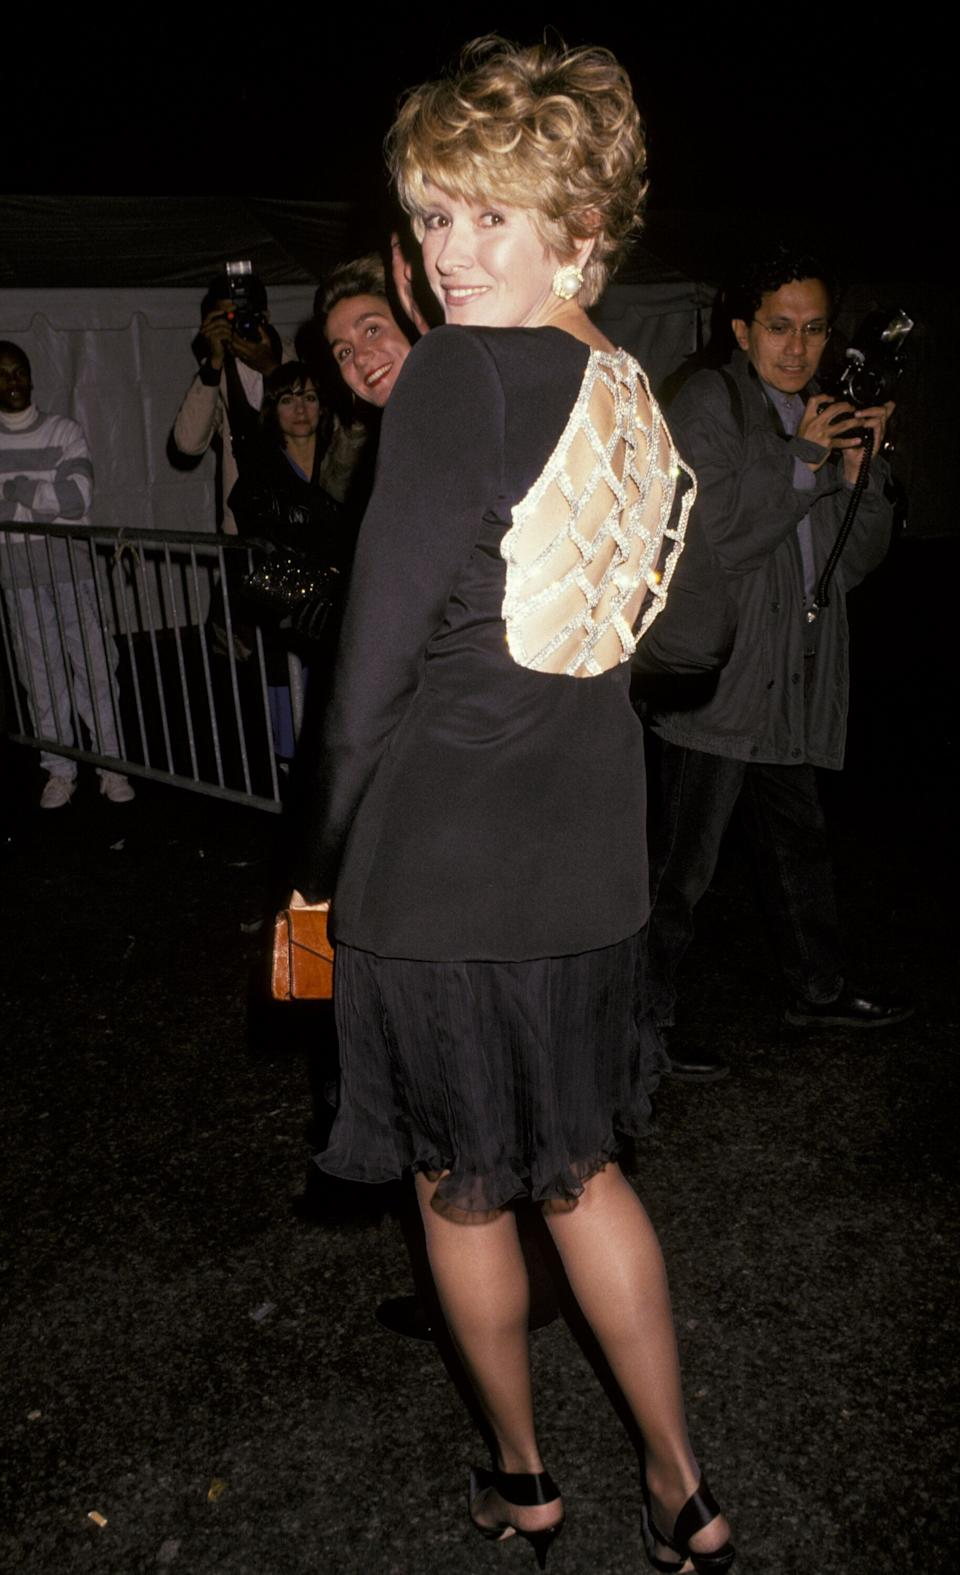 Stewart at the seventh annual Rita Hayworth Alzheimer's Benefit in New York City in 1991.